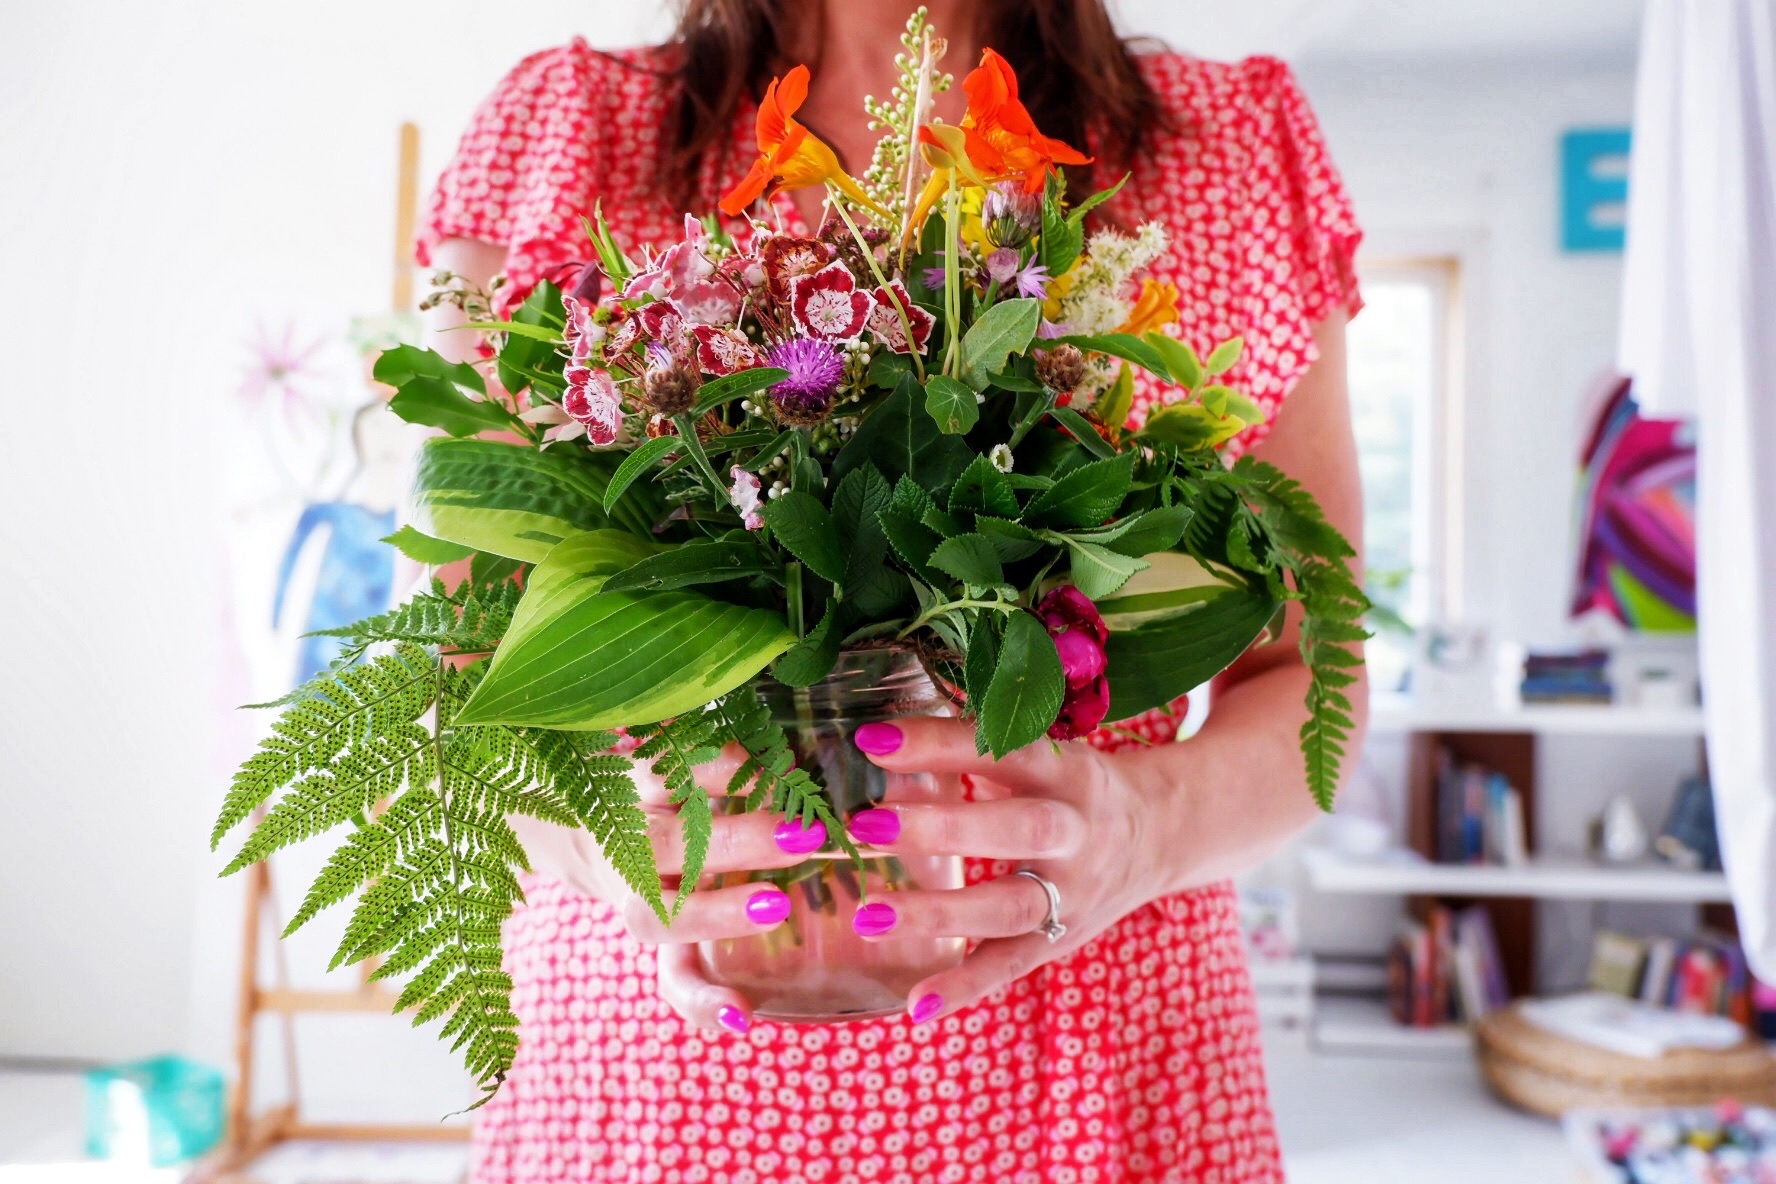 Thank you to a sweet student for having made to stunning wild bouquet! I am a LUCKY teacher.